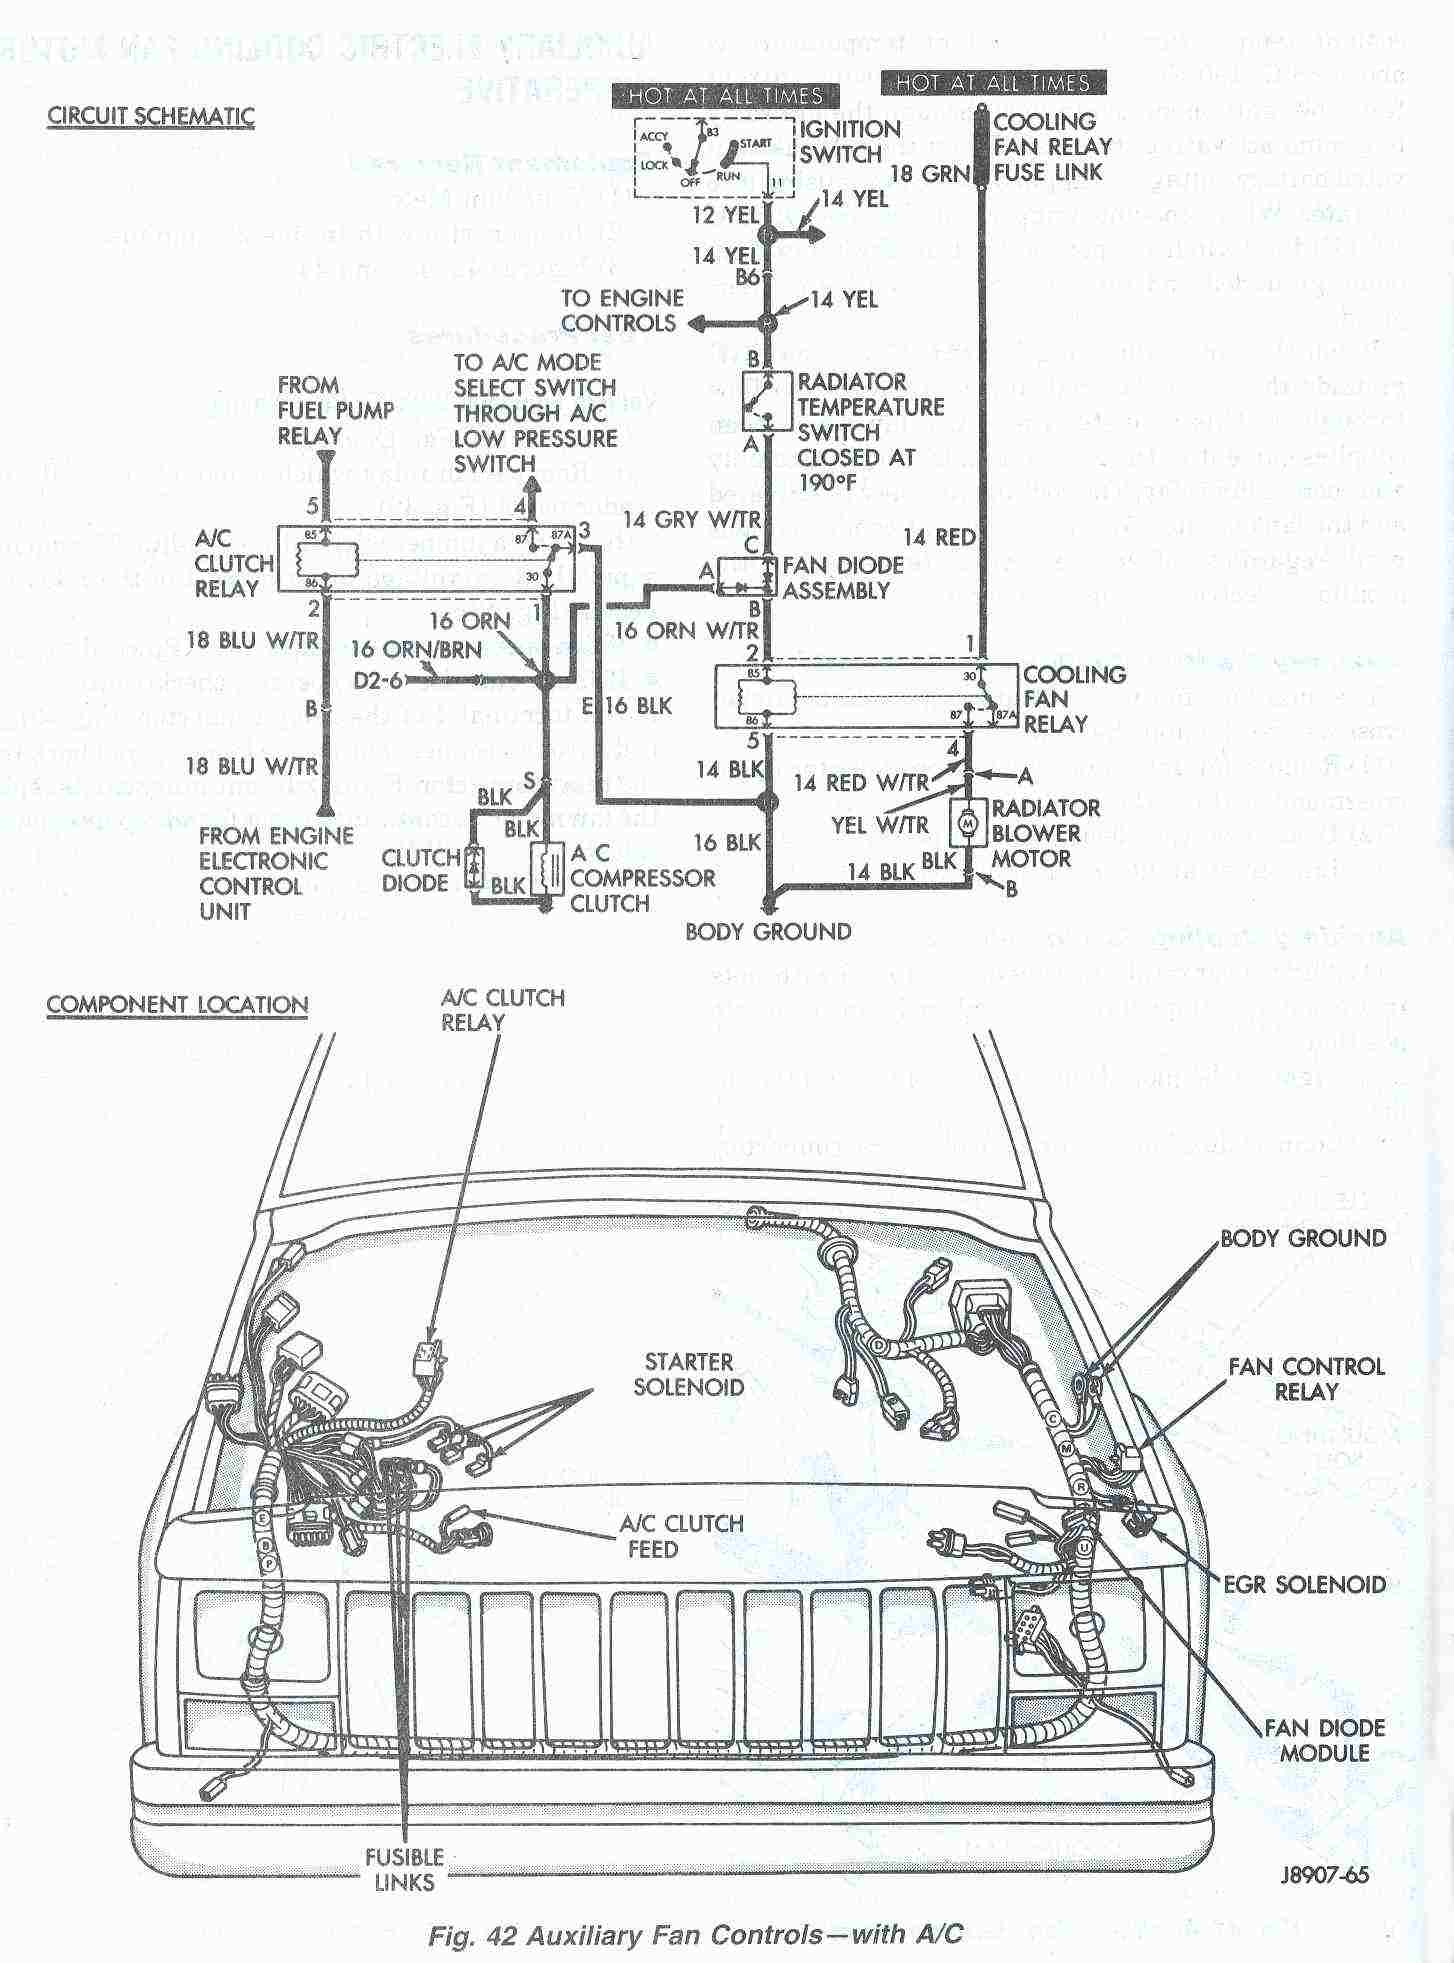 7782F Cat6 Keystone Jack Wiring Diagram | Wiring Resources 2019 on boss wire diagram, cherokee wire diagram, ford wire diagram, bennett wire diagram, delta wire diagram, marathon wire diagram, winnebago wire diagram, cable wire diagram, sterling wire diagram,